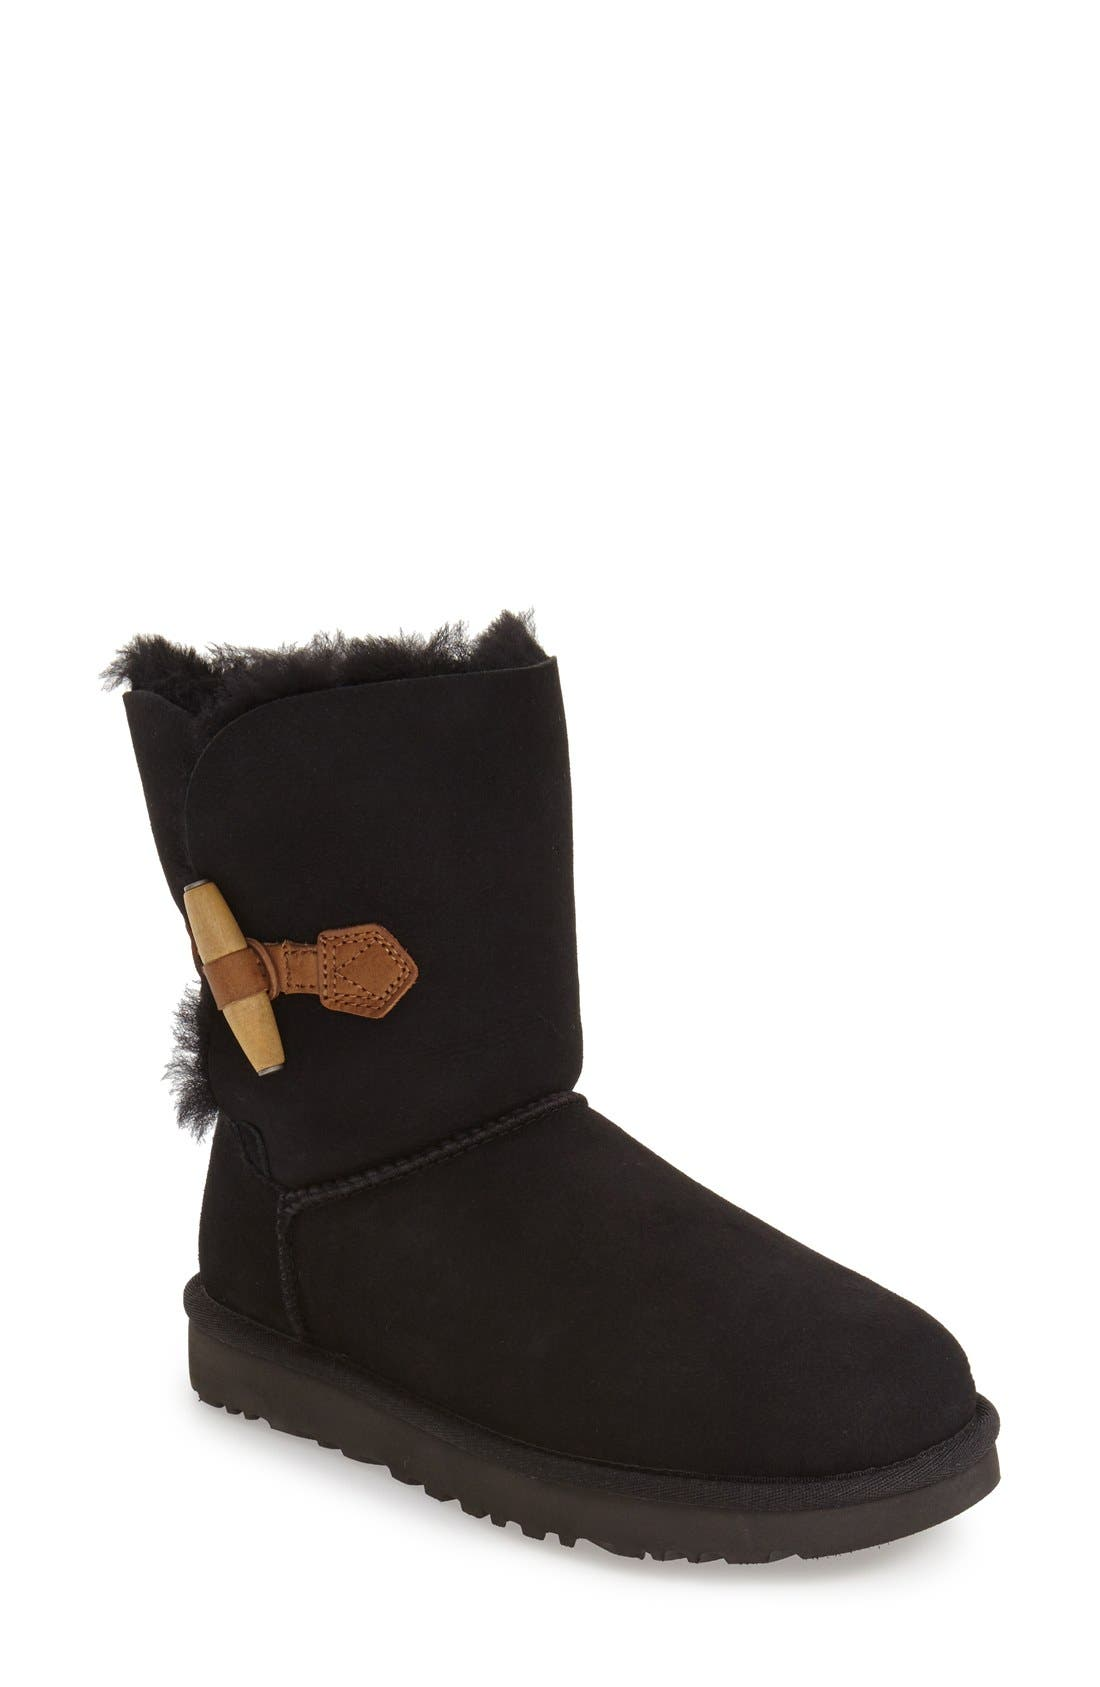 Image of UGG 'Keely' Boot